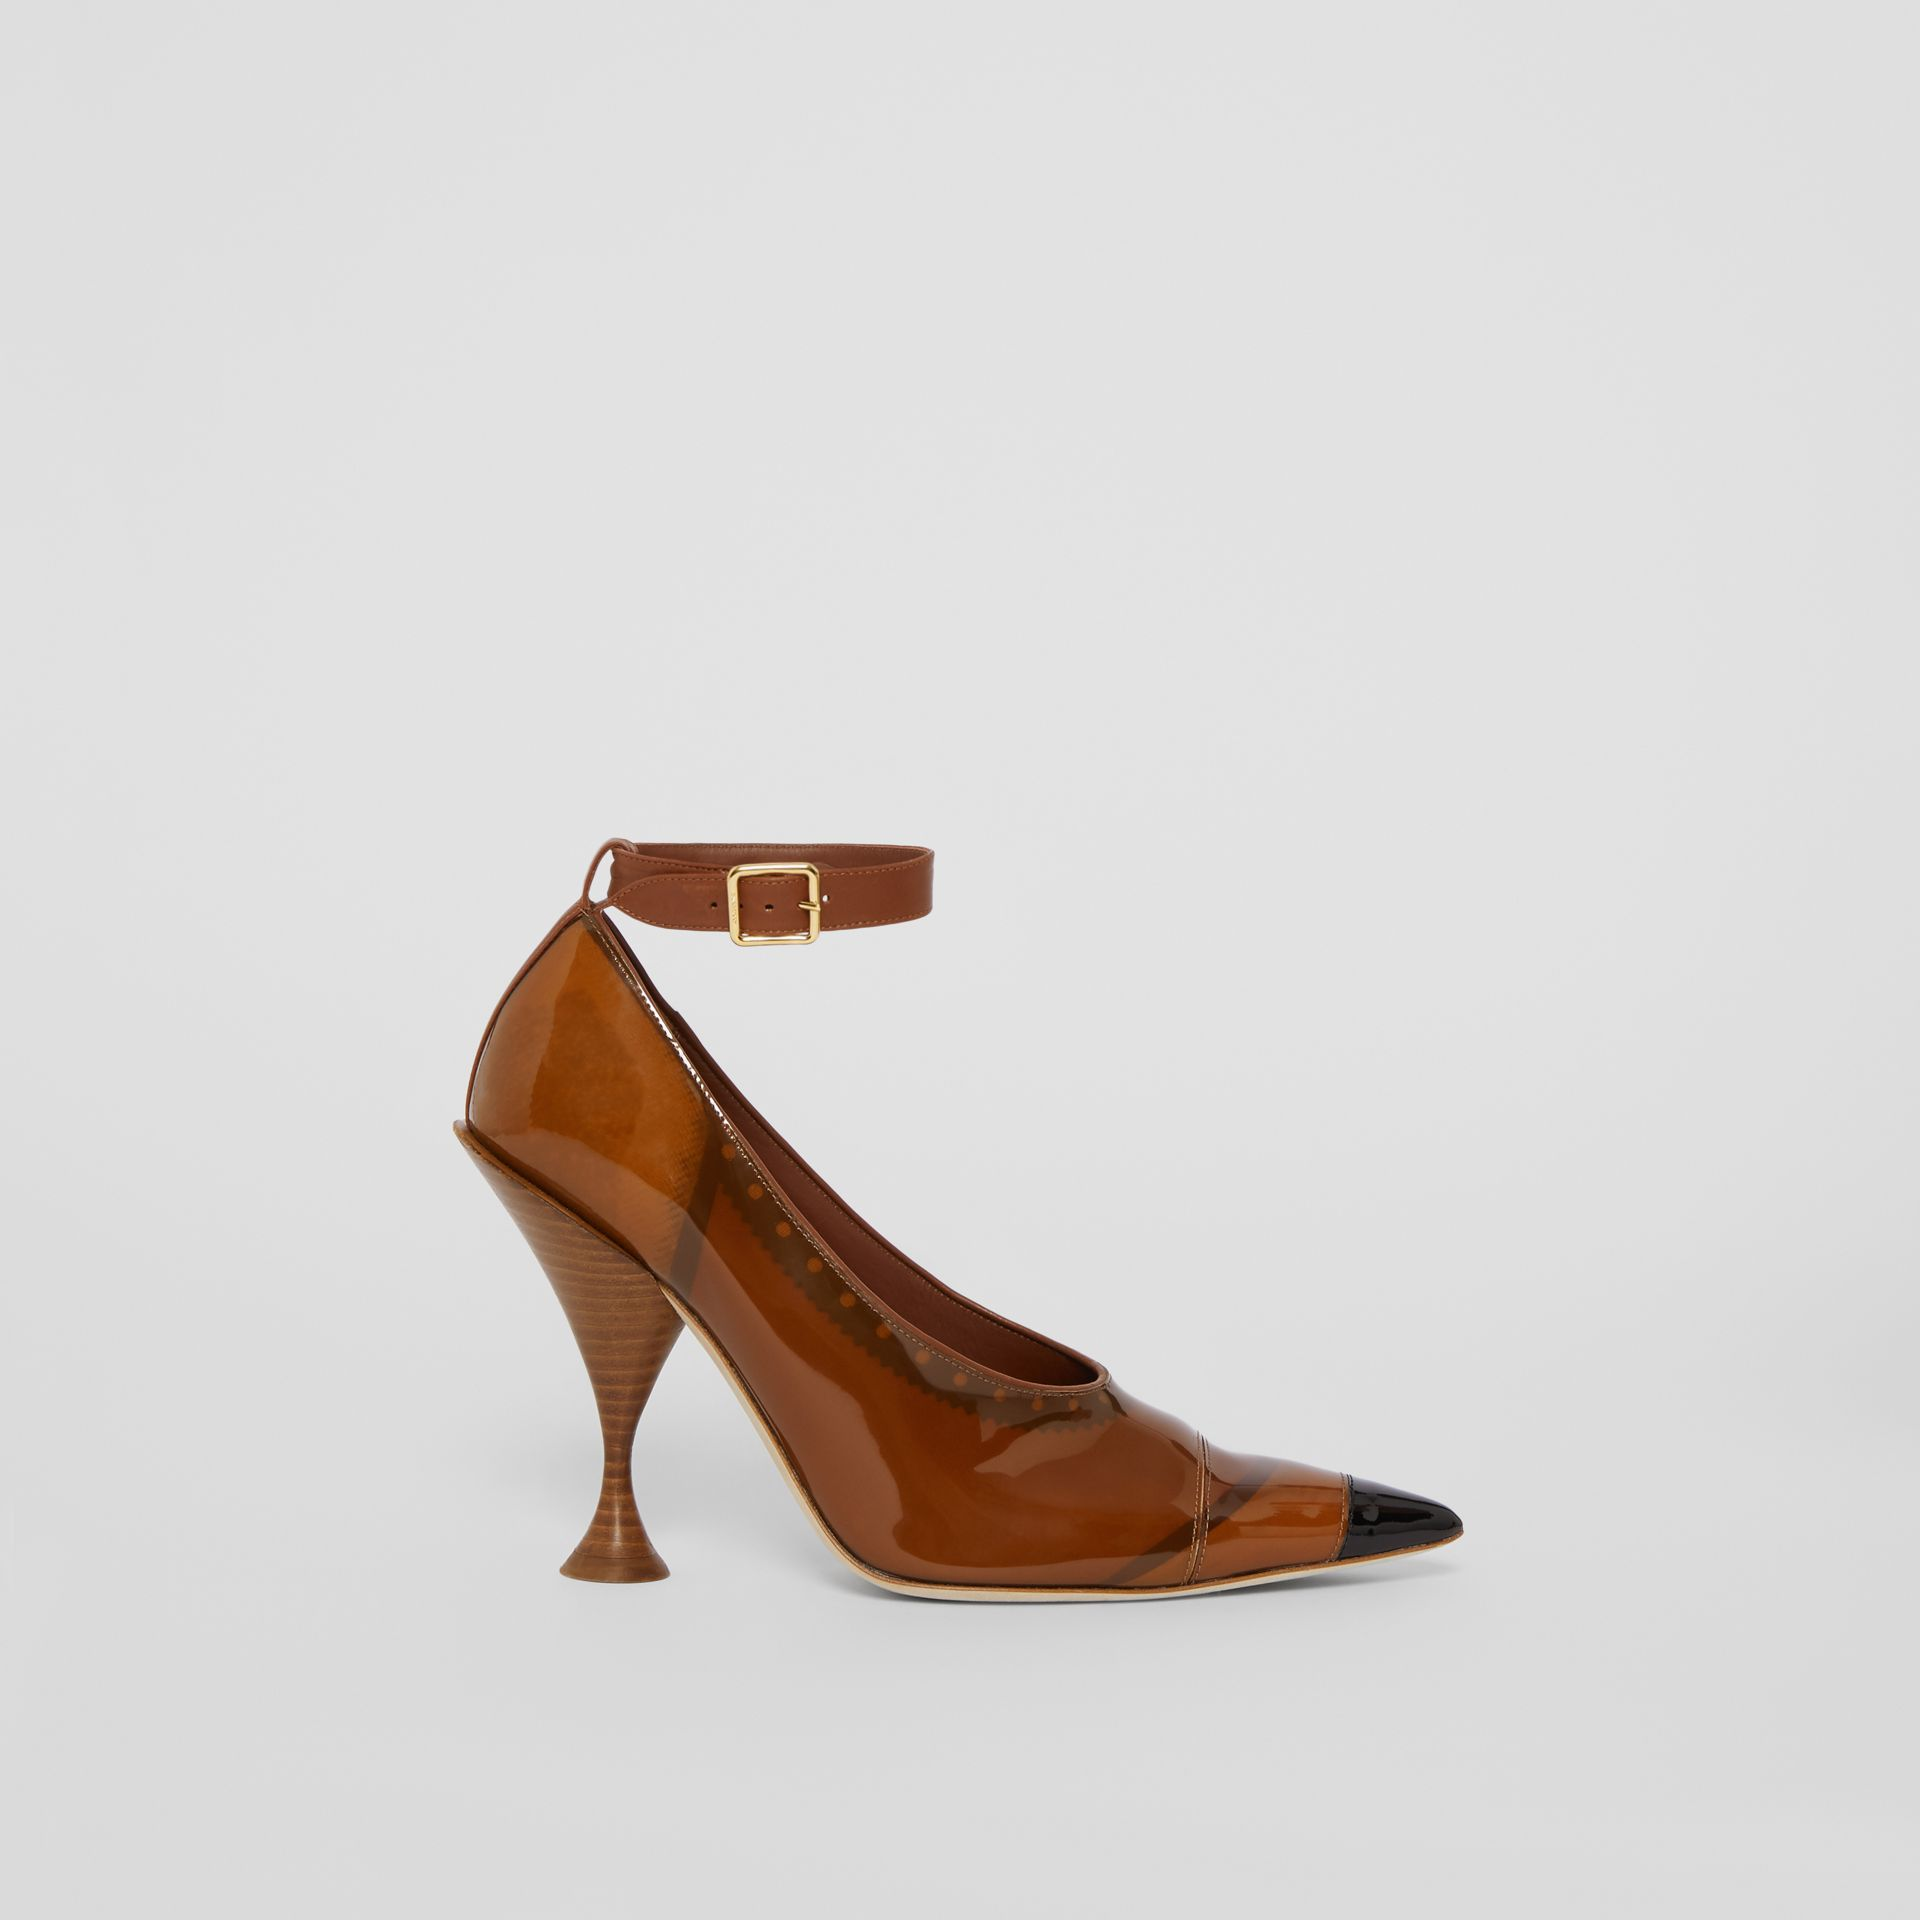 Vinyl and Leather Point-toe Pumps in Malt Brown - Women | Burberry - gallery image 5